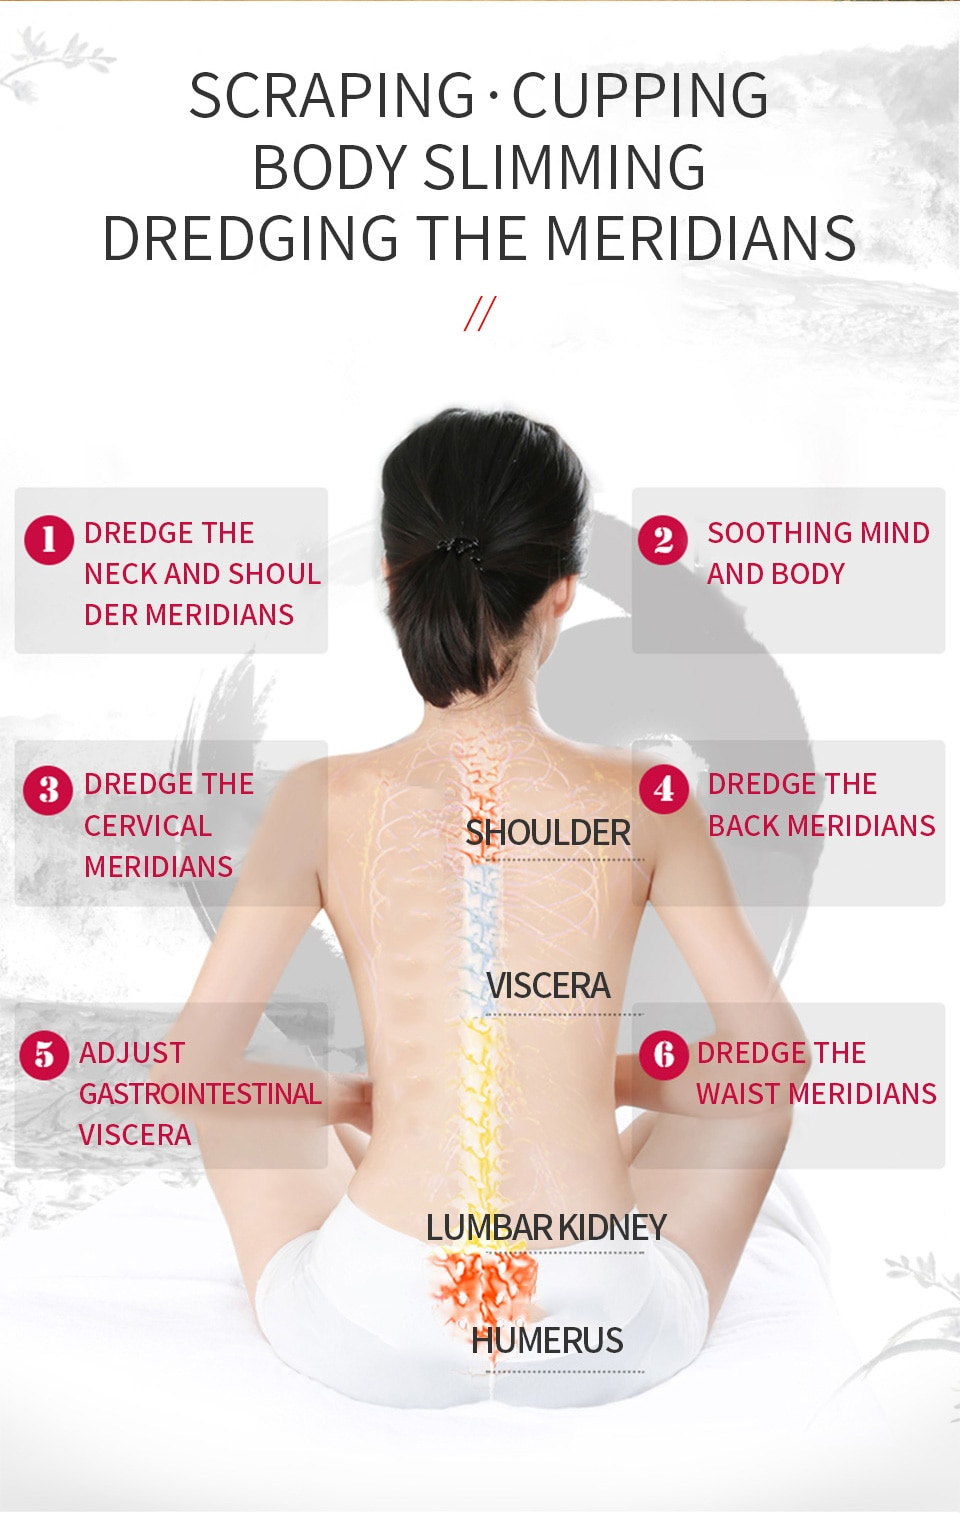 cupping slimming sg)